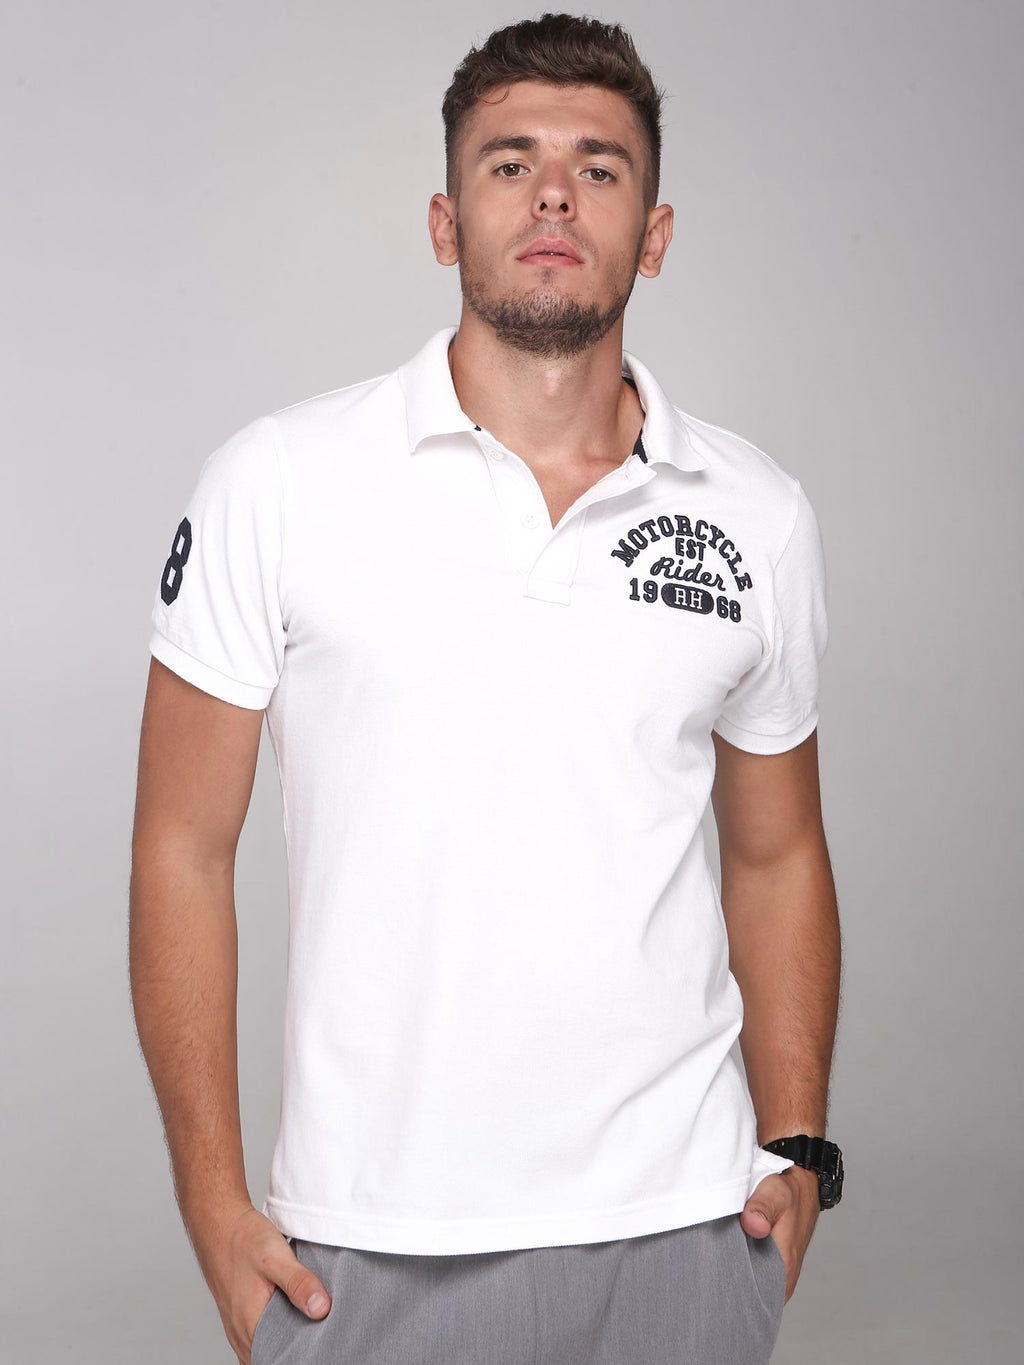 Rock Hooper Men's Solid Collar Cotton White Half Sleeve Polo T-Shirt